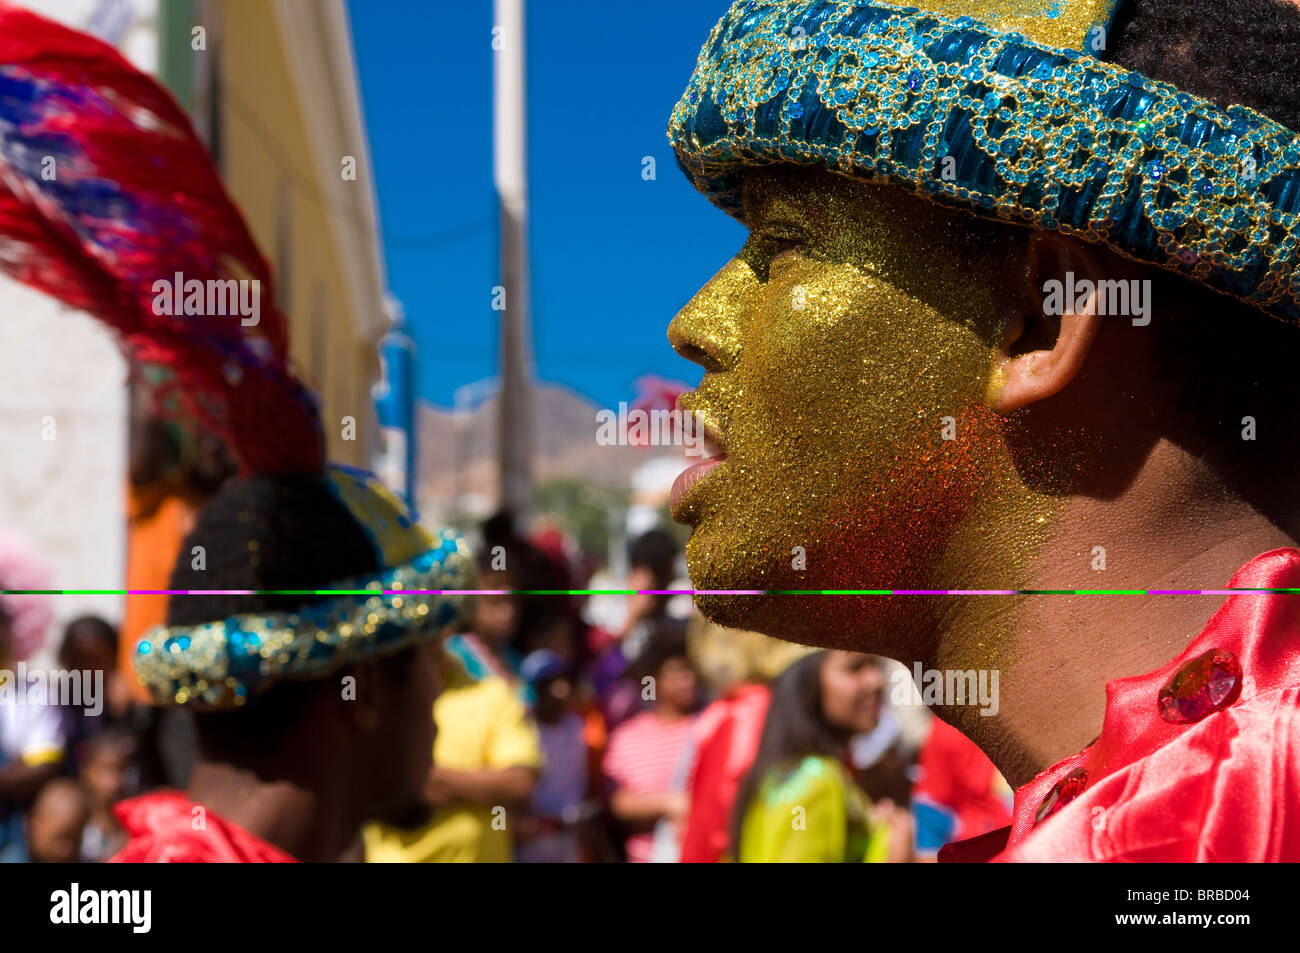 Portrait of young man with cap and coloured face, Carnival, Mindelo, Sao Vicente, Cape Verde - Stock Image